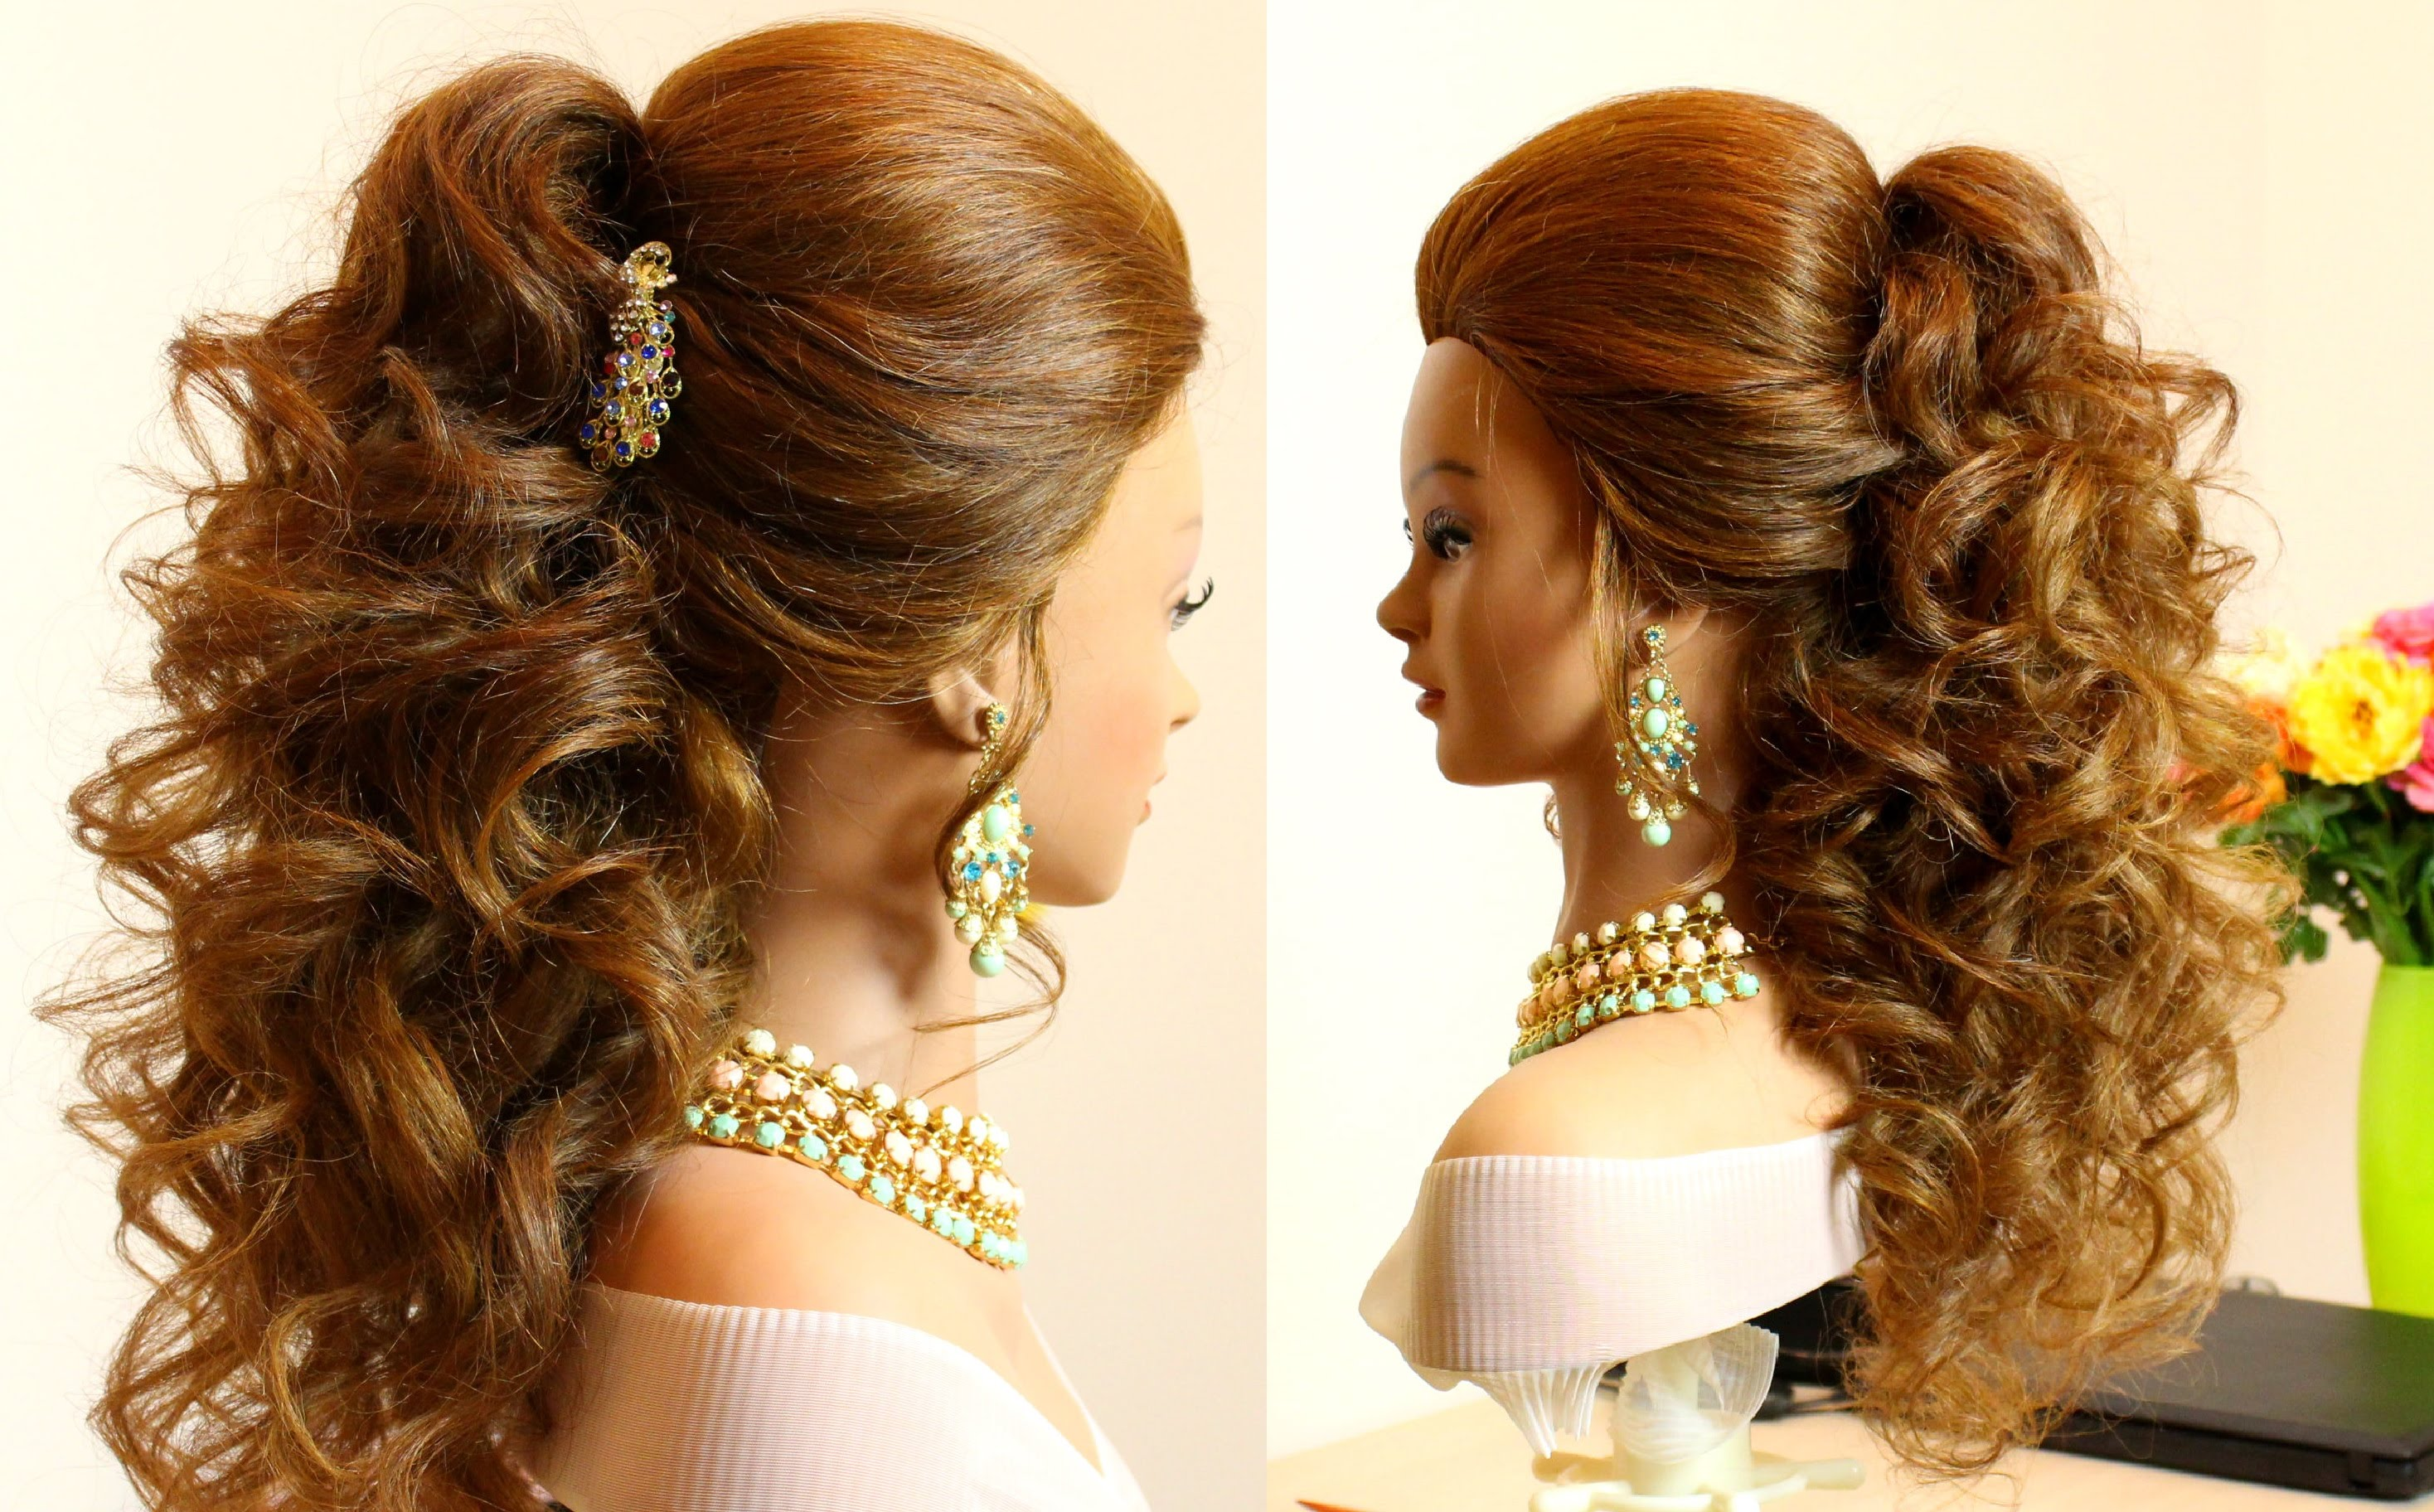 21 Amazing Styles That You Can Do With Your Long Curly